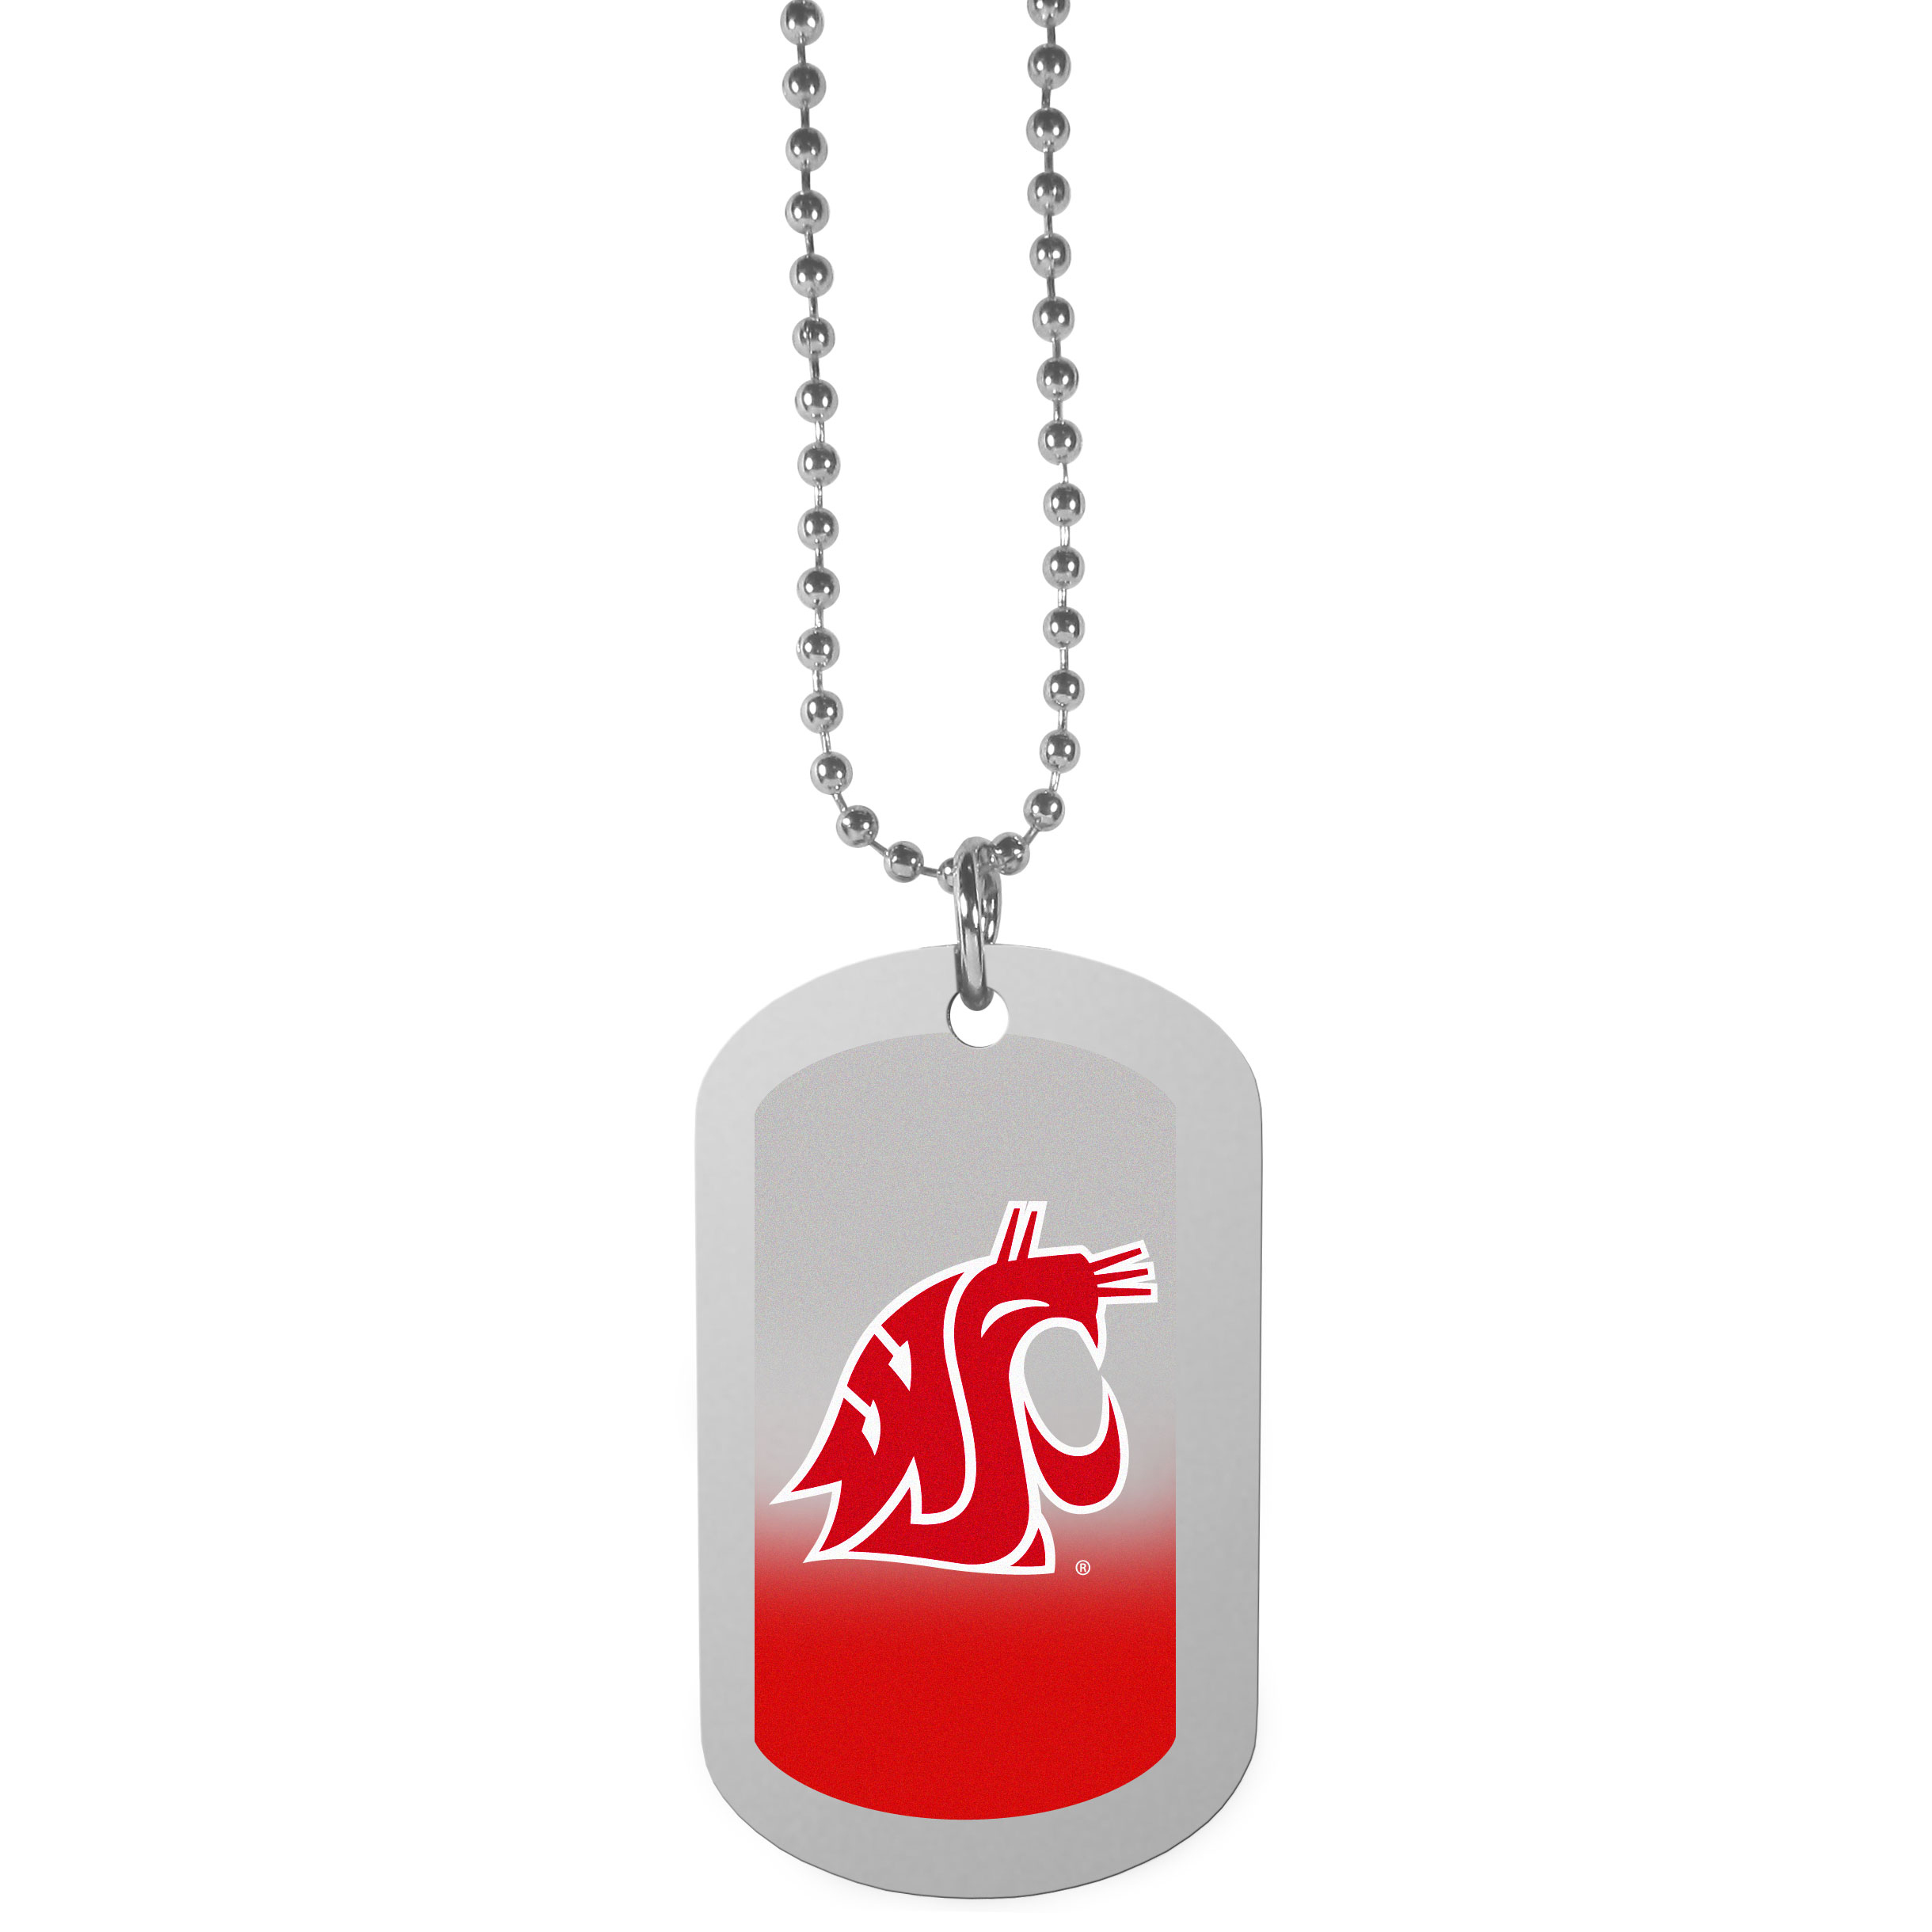 Washington St. Cougars Team Tag Necklace - Dog tag necklaces are a fashion statement that is here to stay. The sporty version of the classic tag features a gradient print in team colors featuring a full color team logo over a high polish tag to create a bold and sporty look. The tag comes on a 26 inch ball chain with a ball and joint clasp. Any Washington St. Cougars would be proud to wear this attractive fashion accessory.